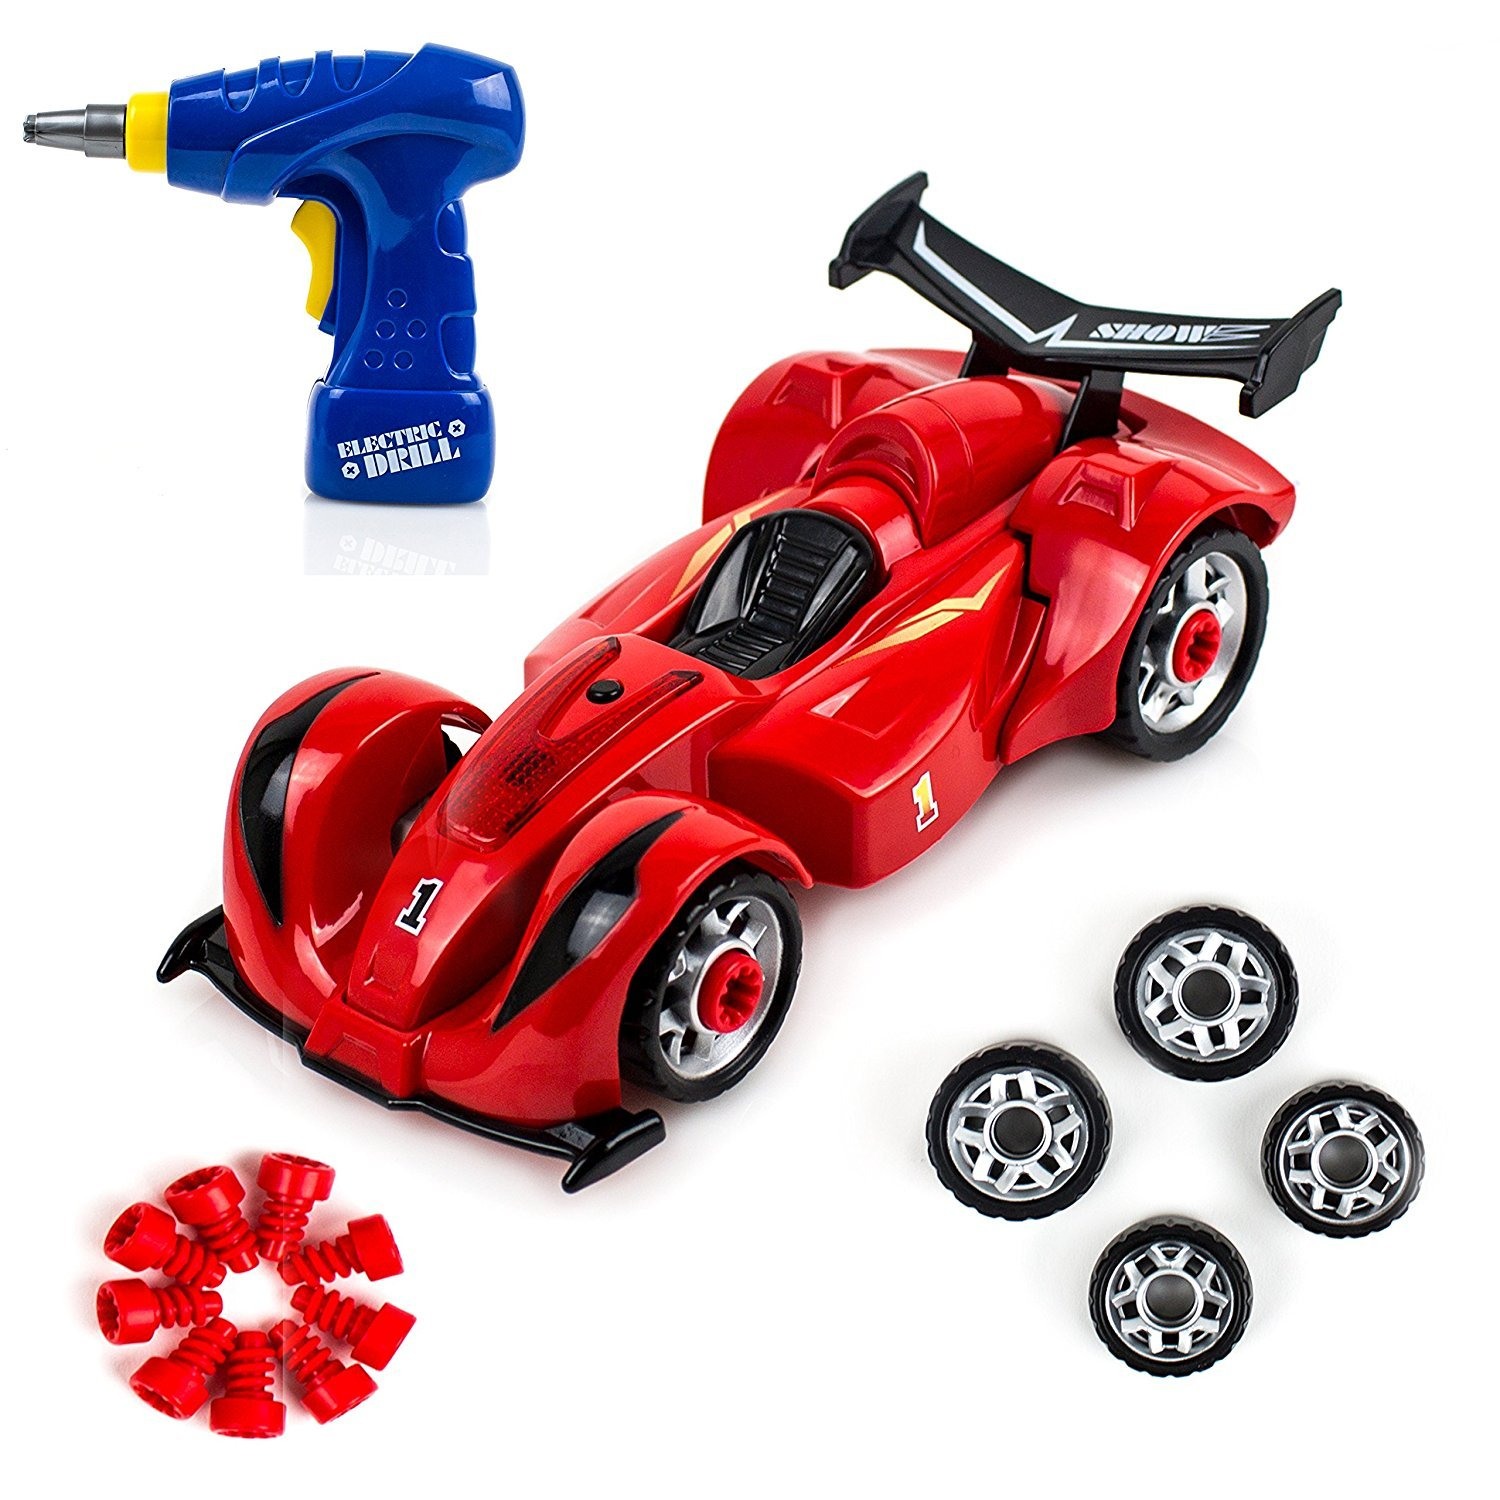 Build Your Own Toy Formula Racing Car Take-A-Part Toy for Kids with 24 Take Apart Pieces, Tool Drill, Lights and Sounds